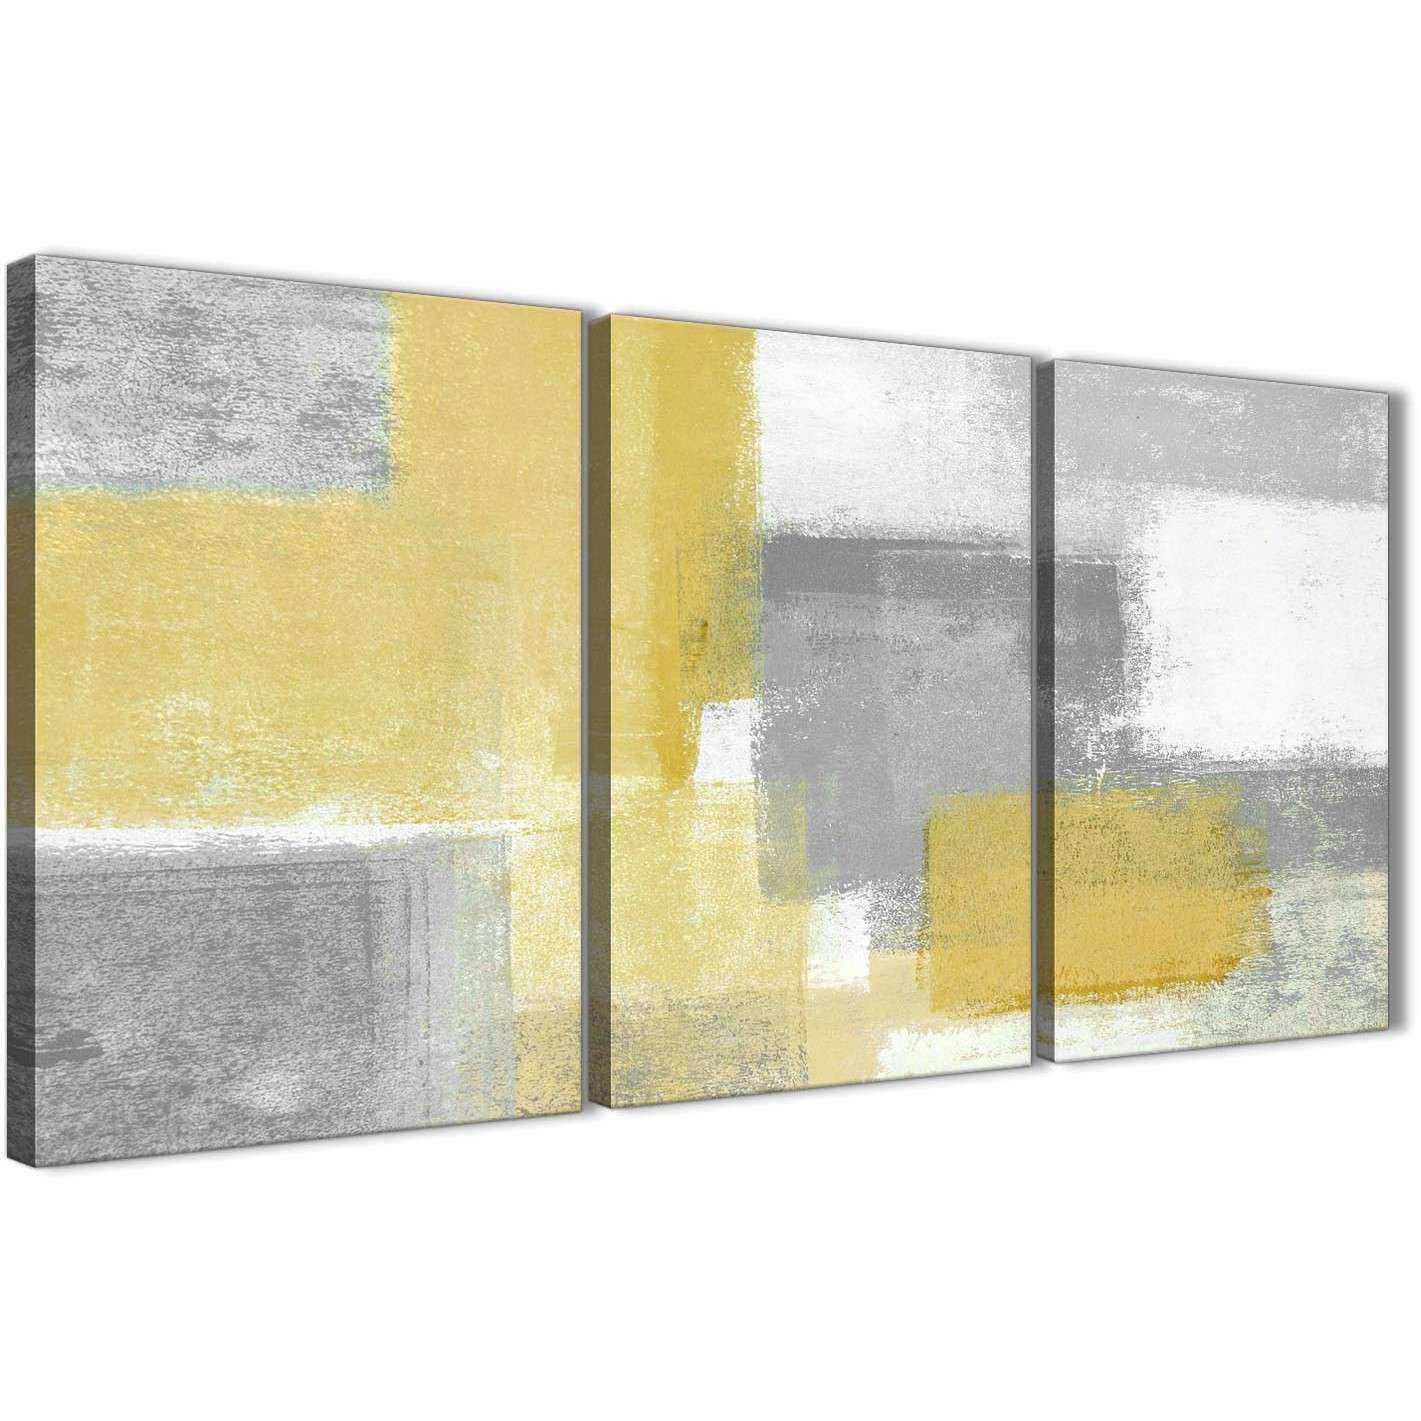 Fresh Abstract Wall Art Prints | Wall Art Ideas